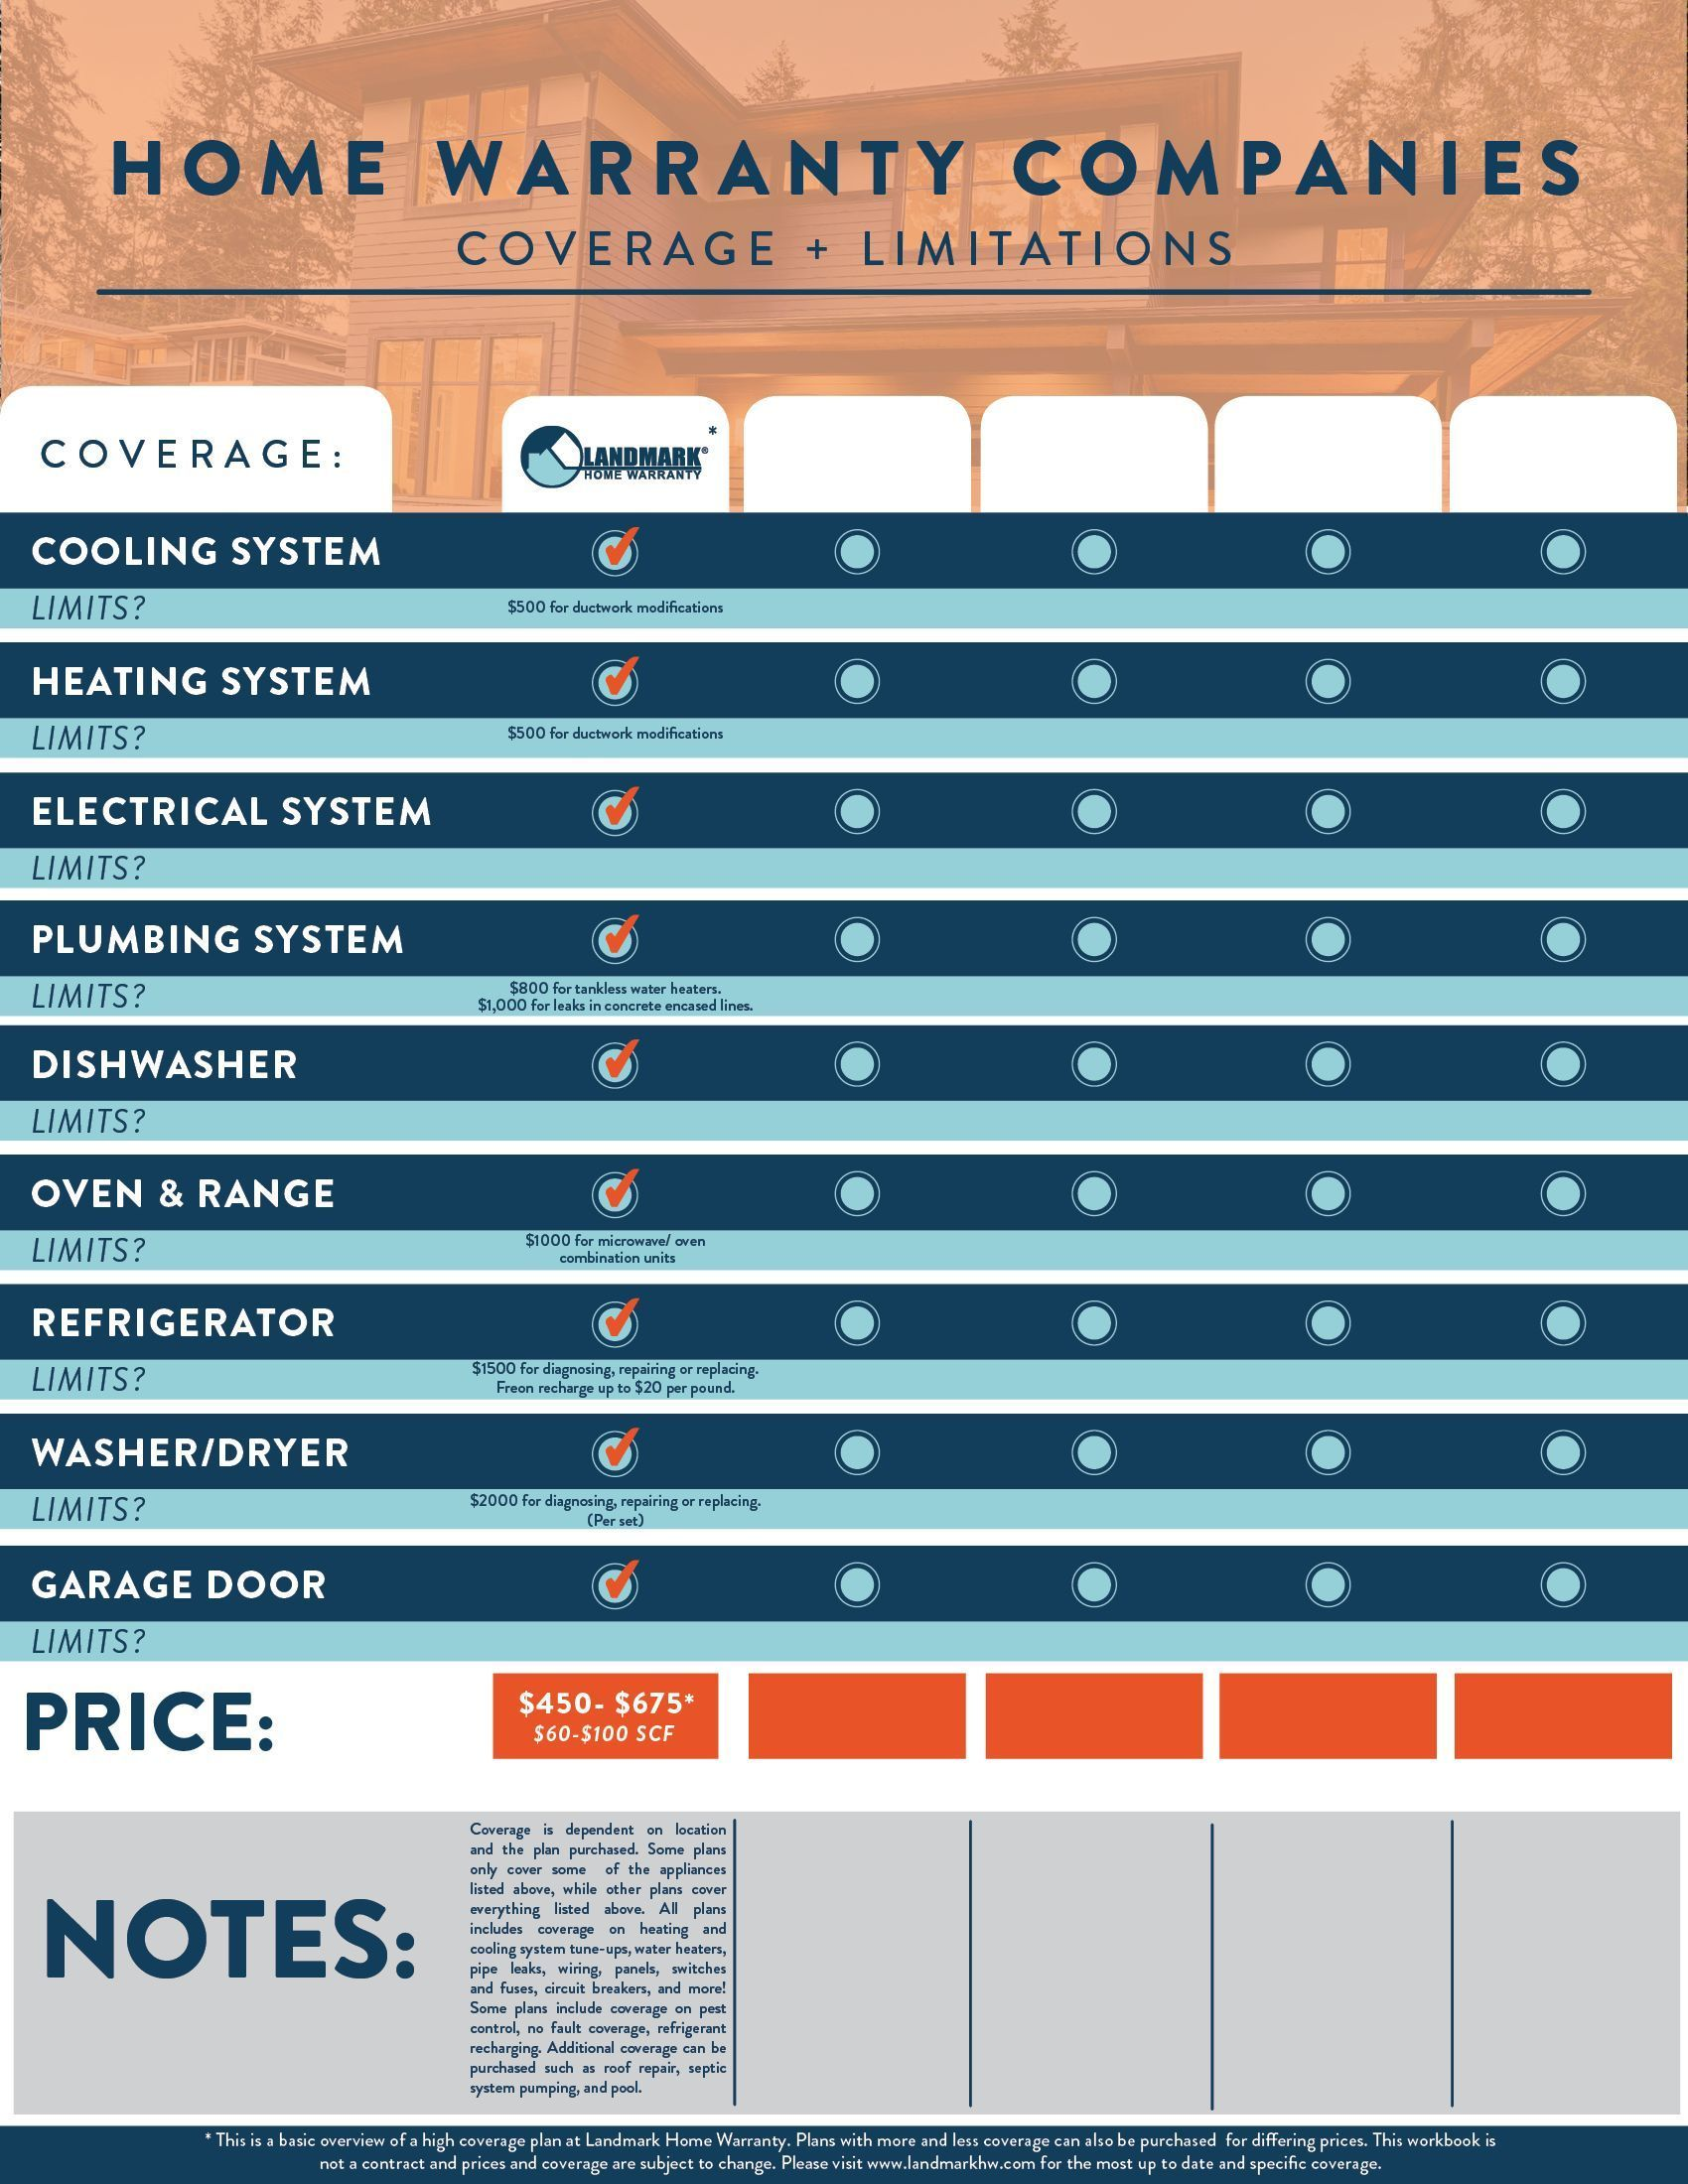 Use This Workbook To Compare Different Home Warranty Companies